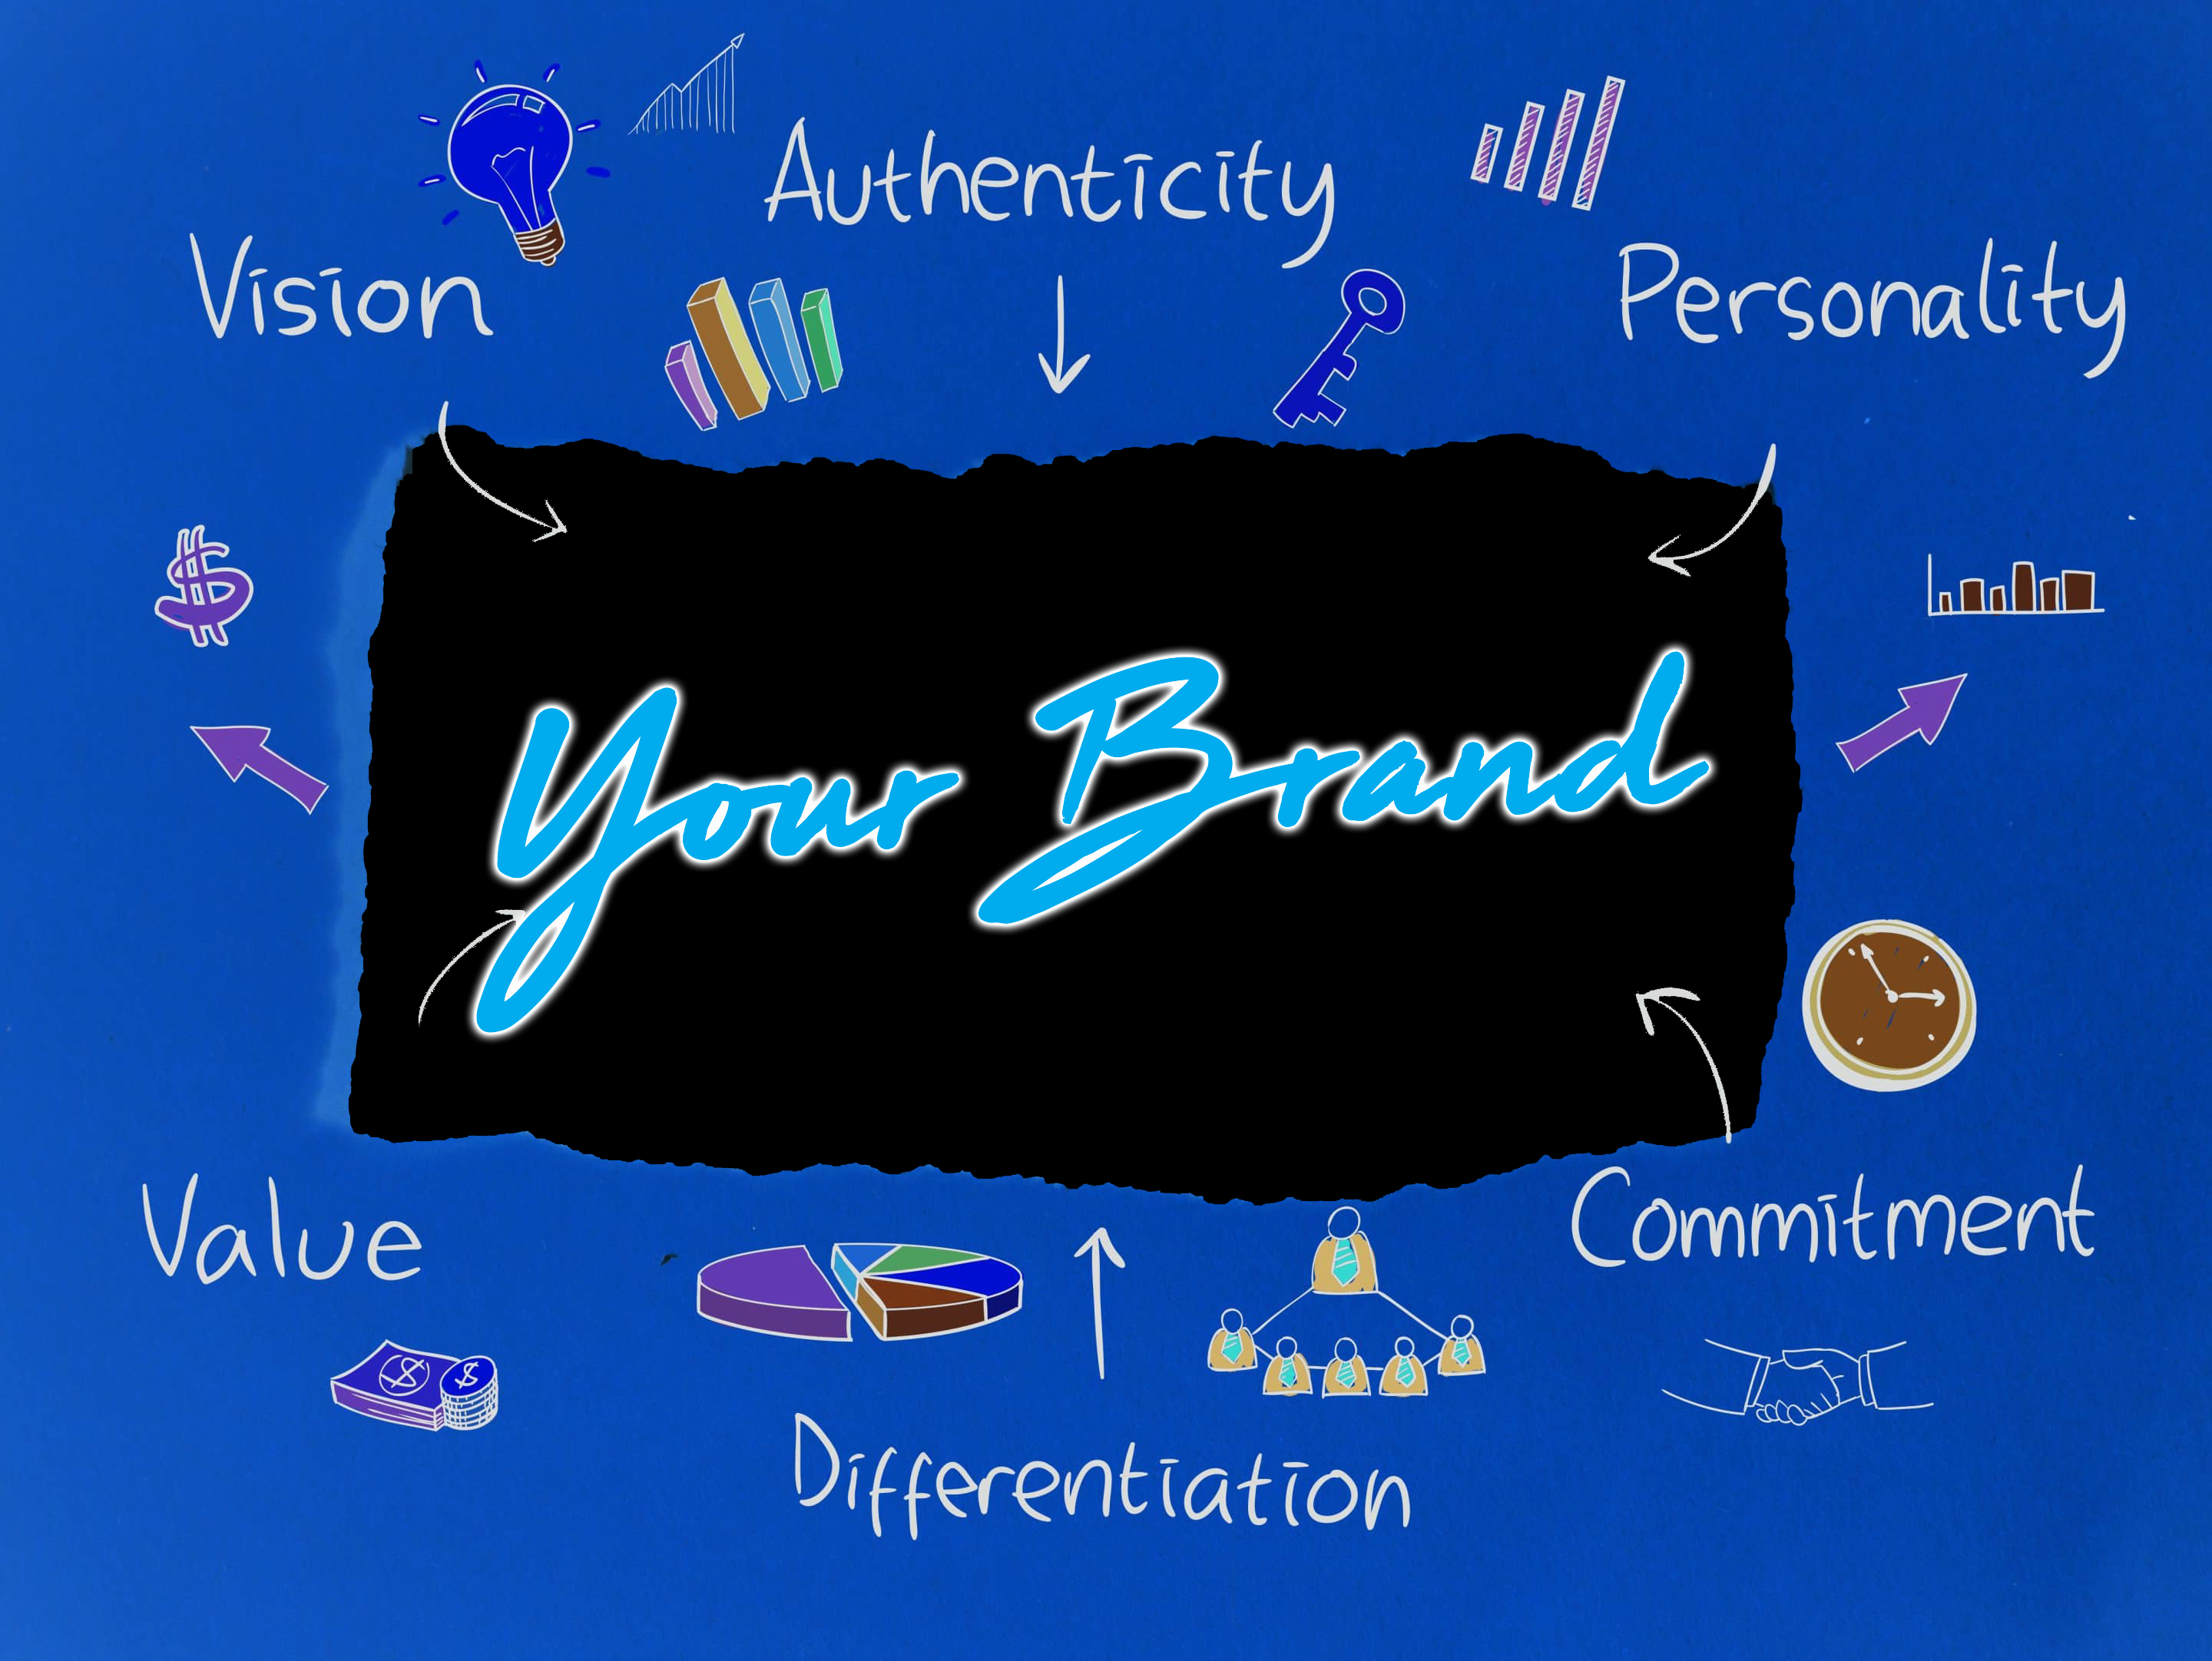 But I'm Not a Product!? Personal Branding Explained - Business 2 Community